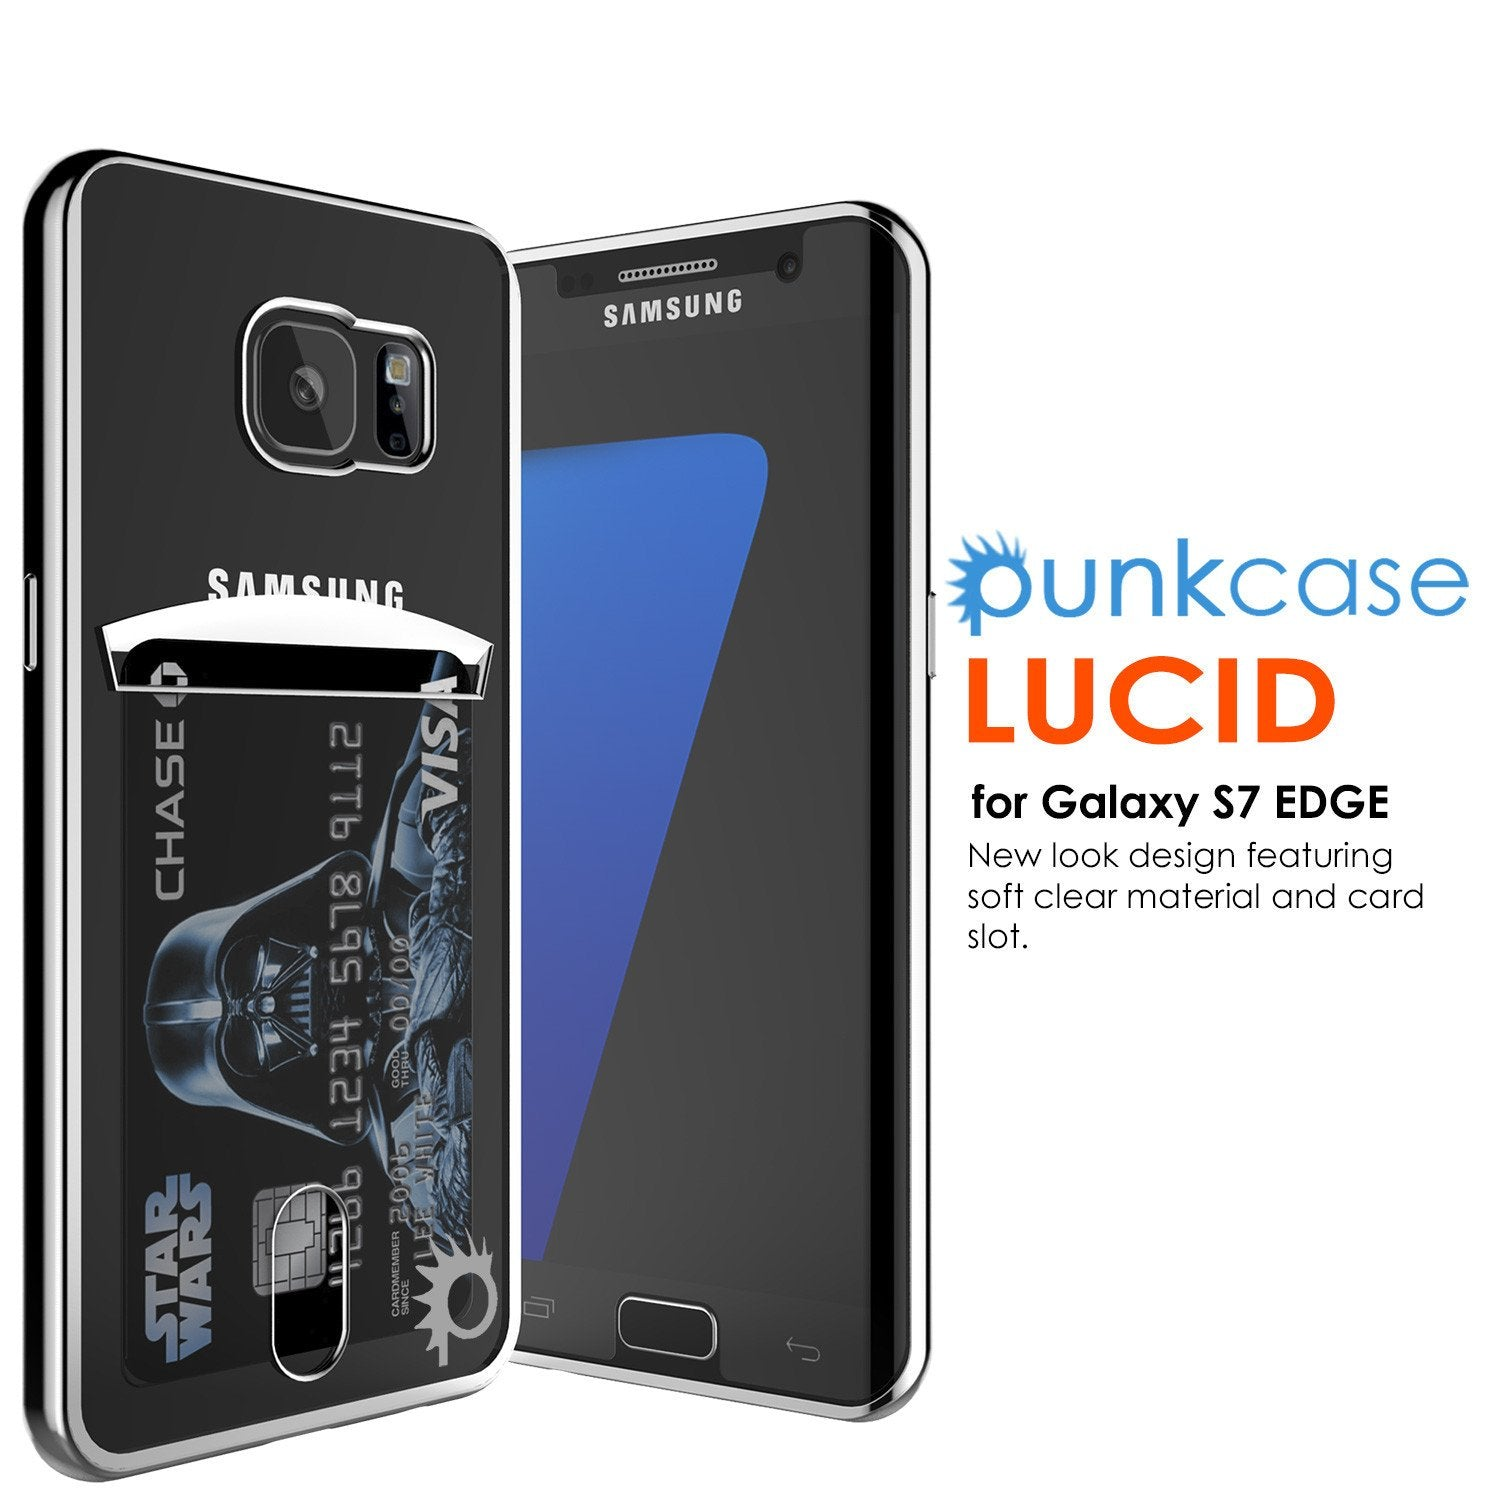 Galaxy S7 Case, PUNKCASE® LUCID Silver Series | Card Slot | SHIELD Screen Protector | Ultra fit